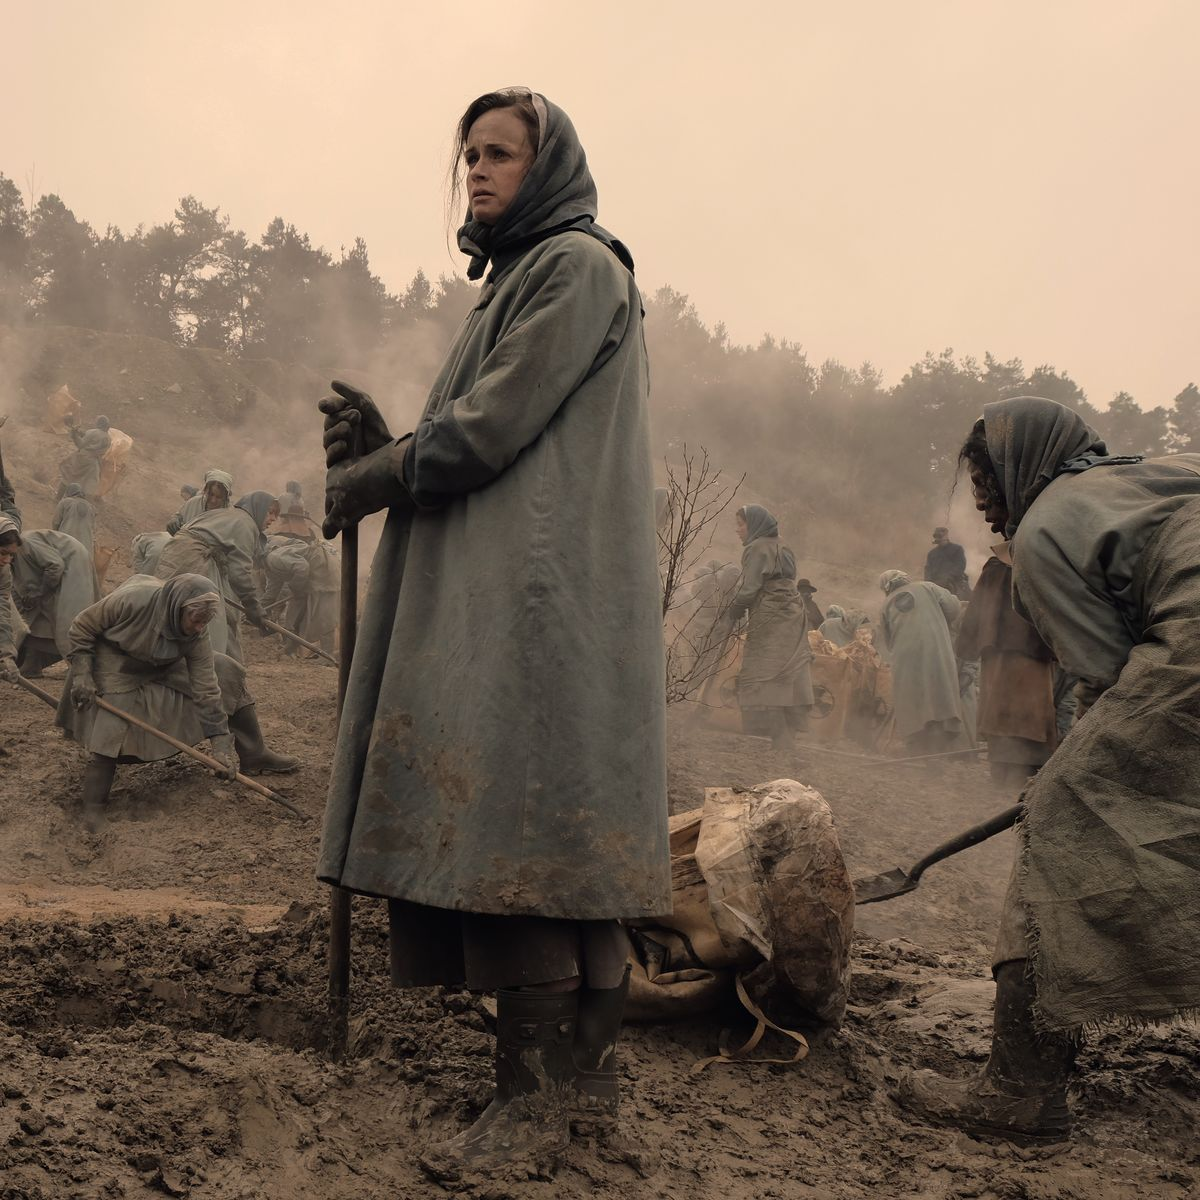 The Handmaid's Tale - Alexis Bledel as Emily in the colony